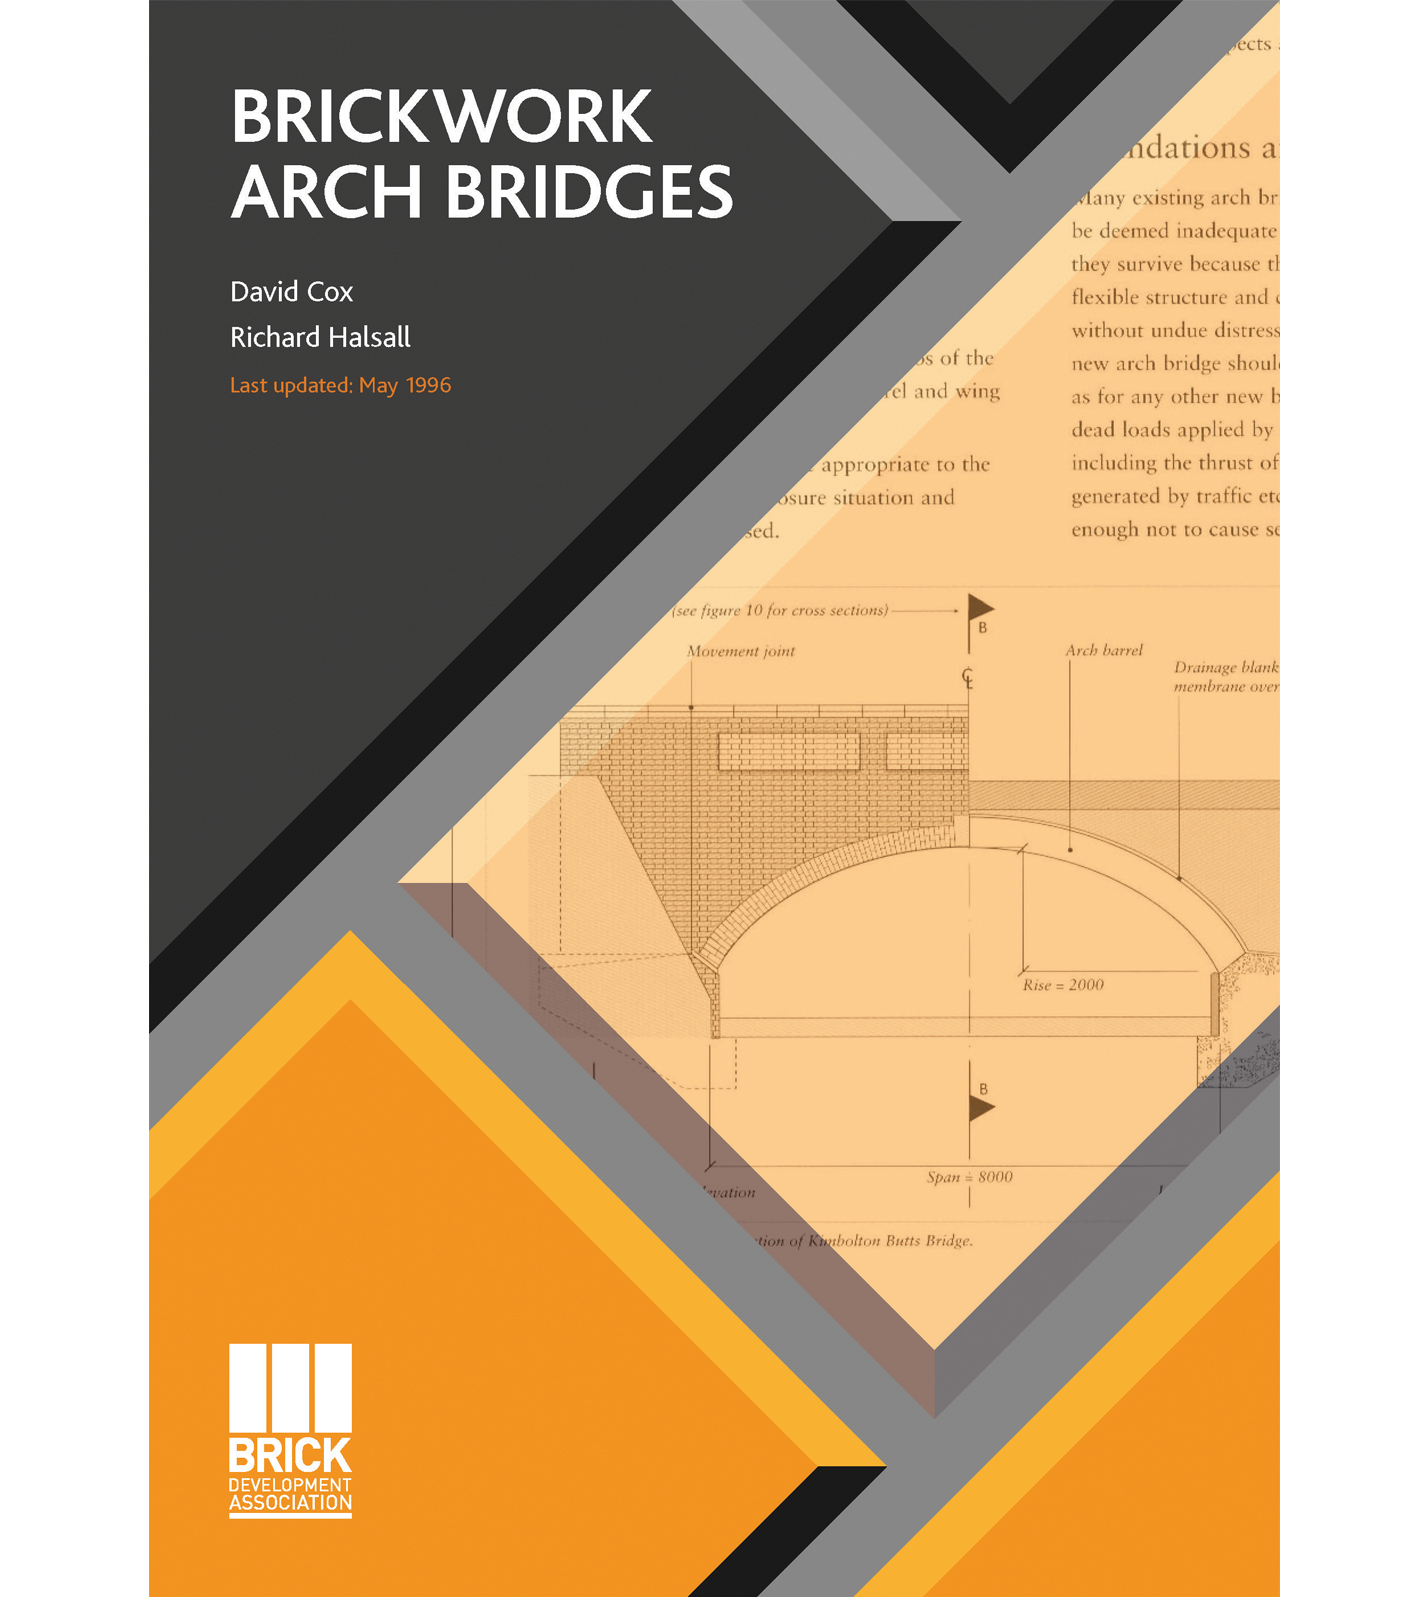 BRICKWORK ARCH BRIDGES